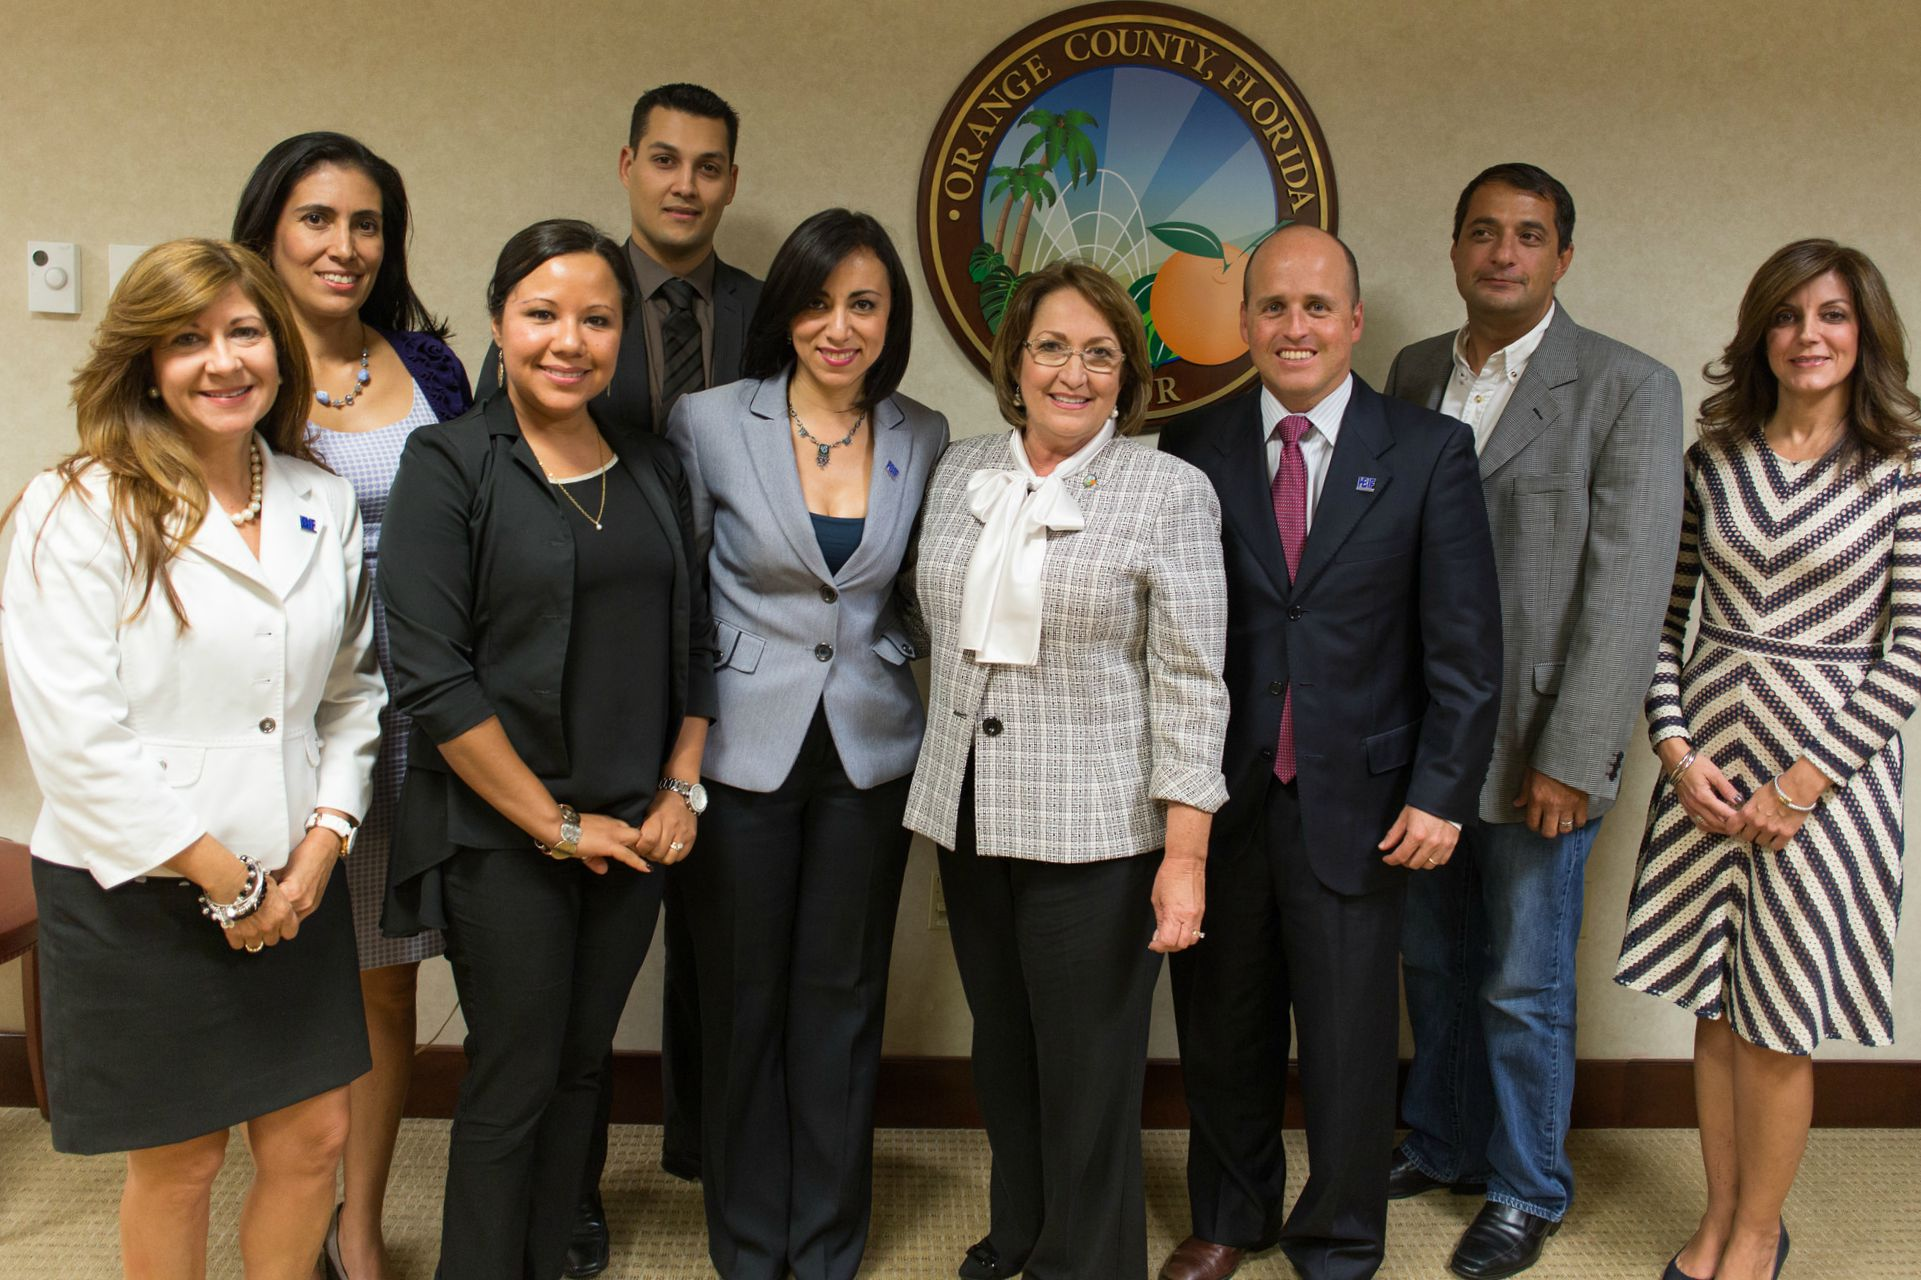 Mayor Jacobs with Central Florida Chambers of Commerce